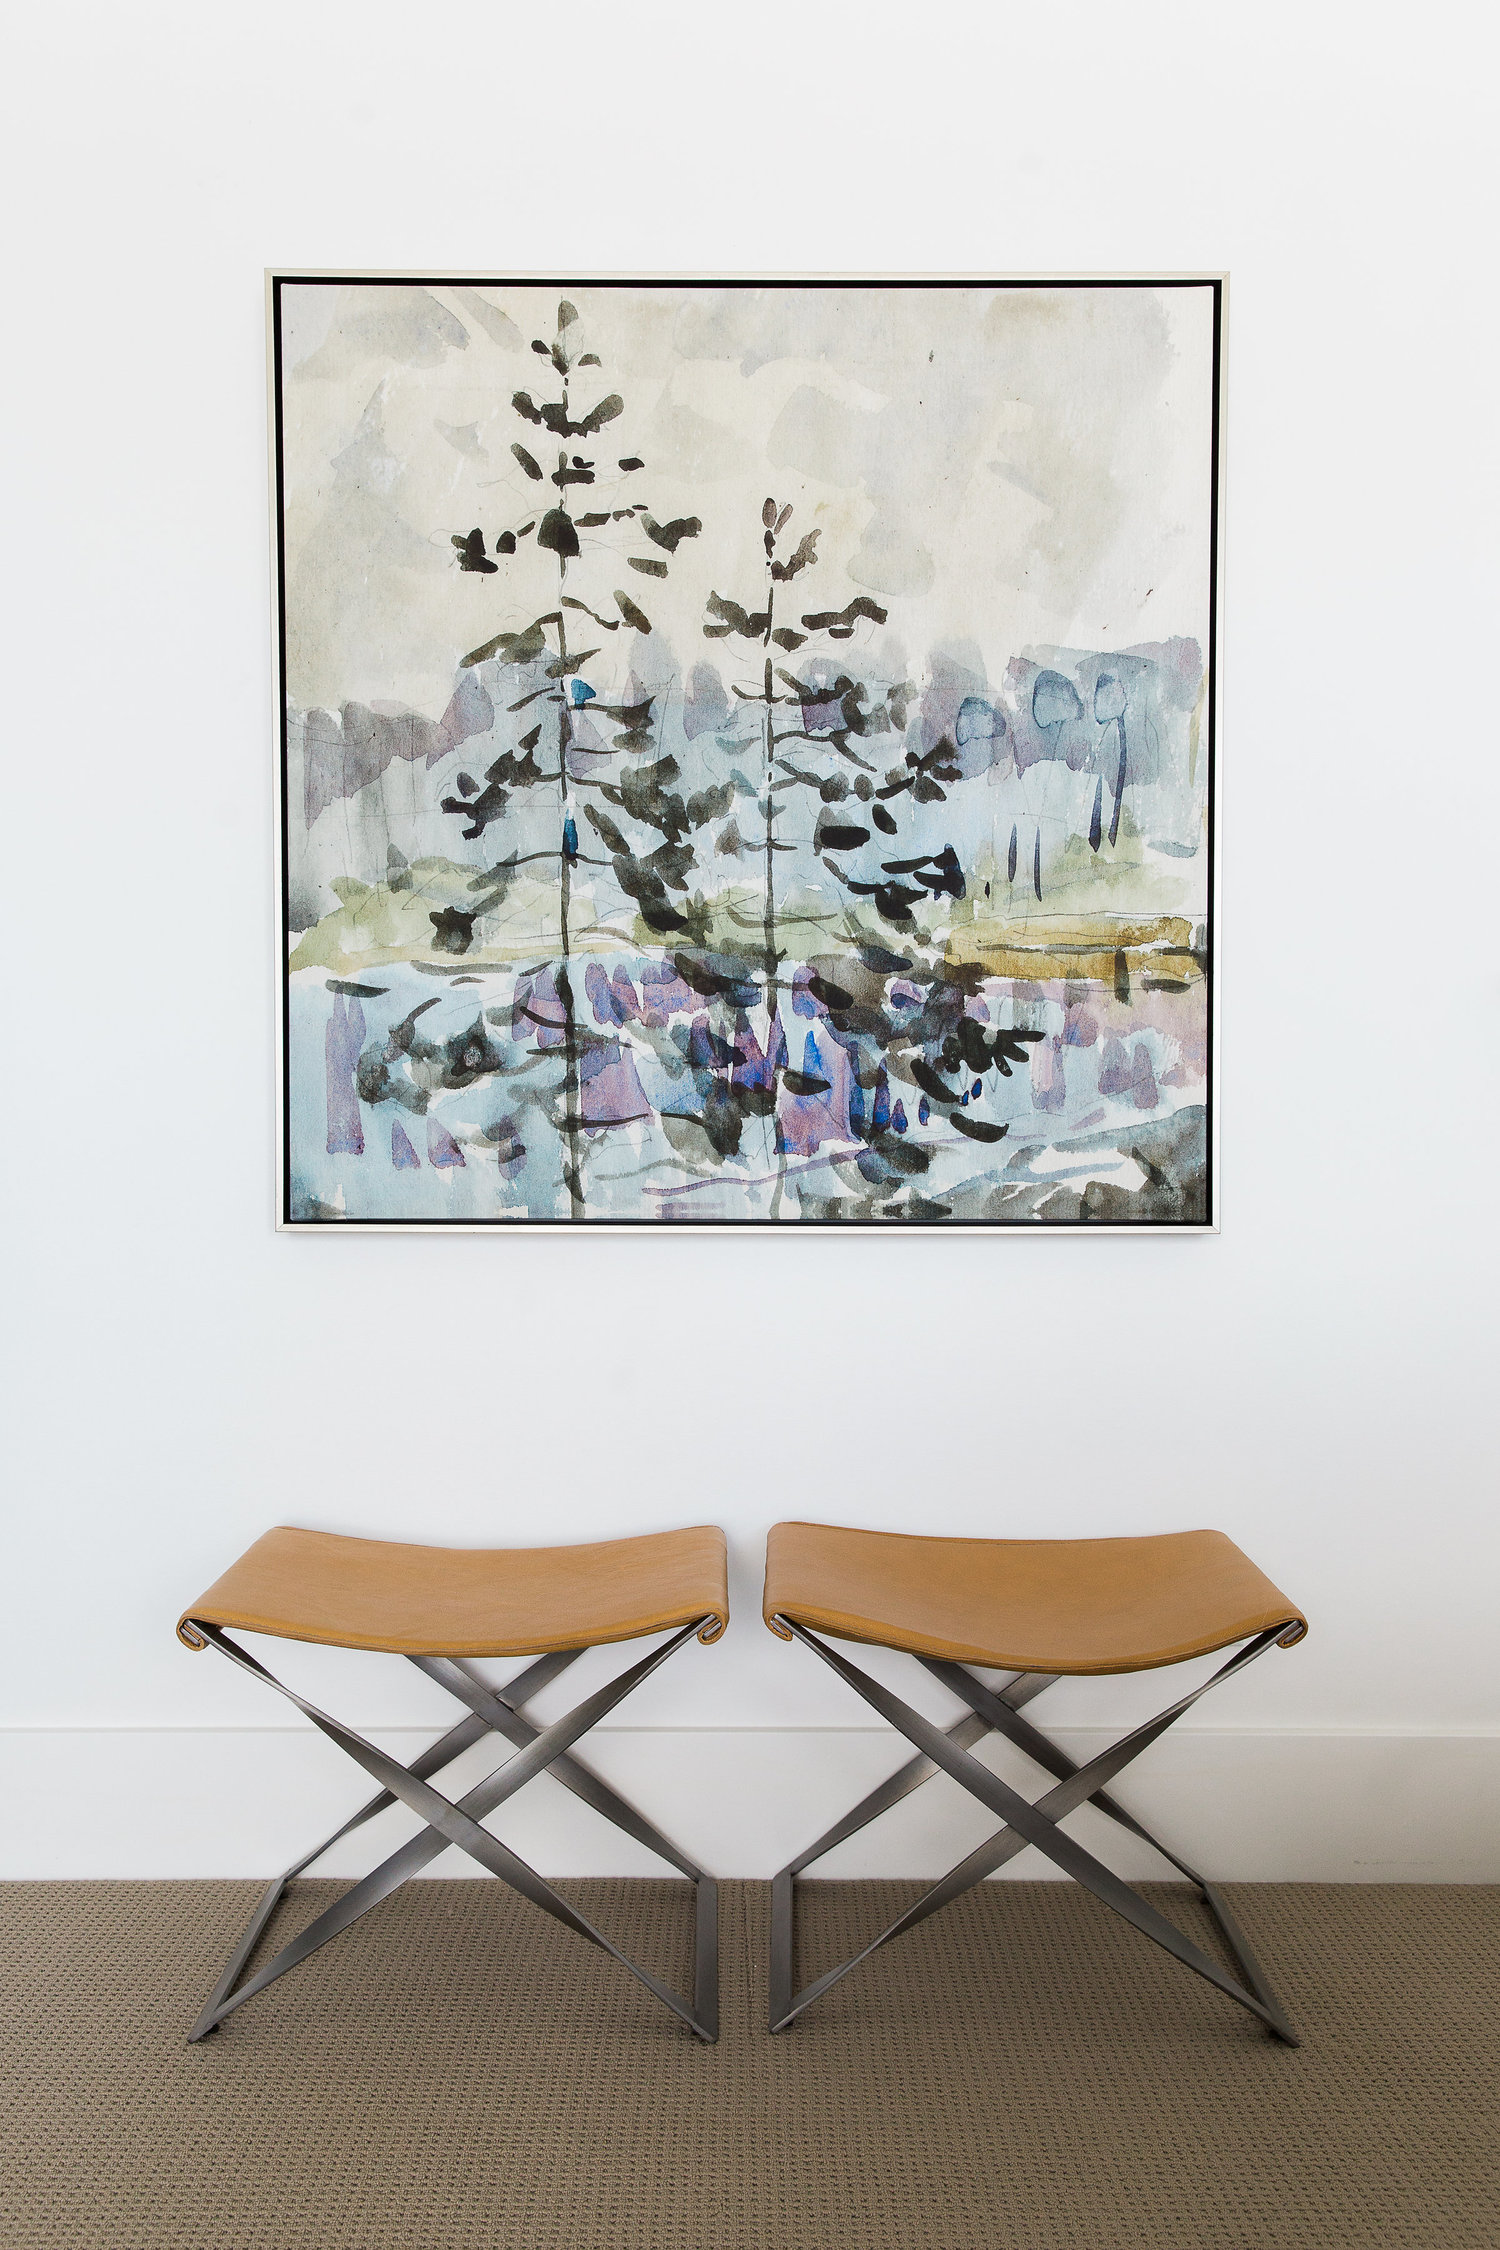 Collapsible stools underneath wall art